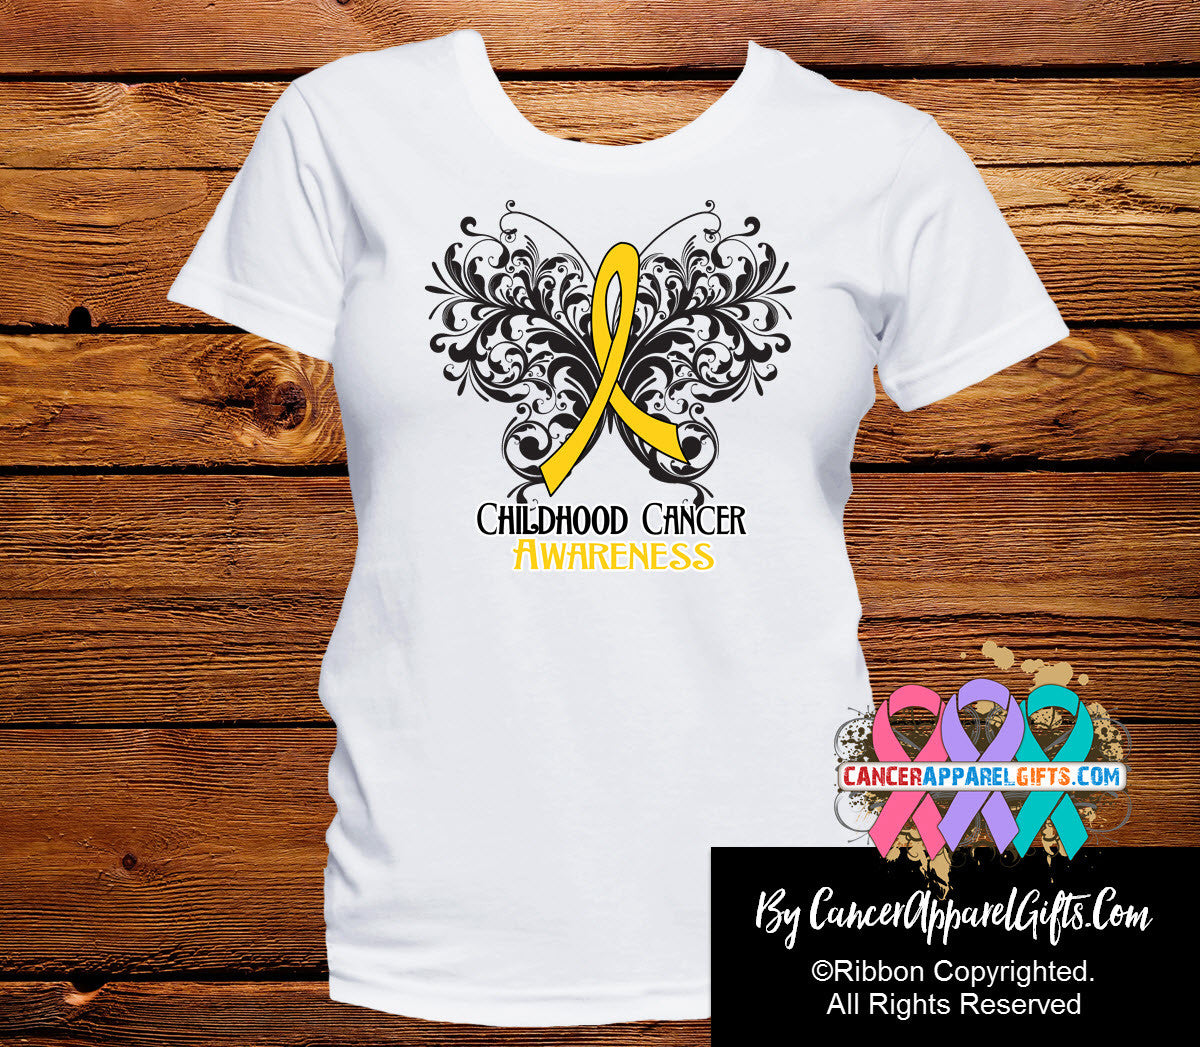 Childhood Cancer Butterfly Ribbon Shirts - Cancer Apparel and Gifts